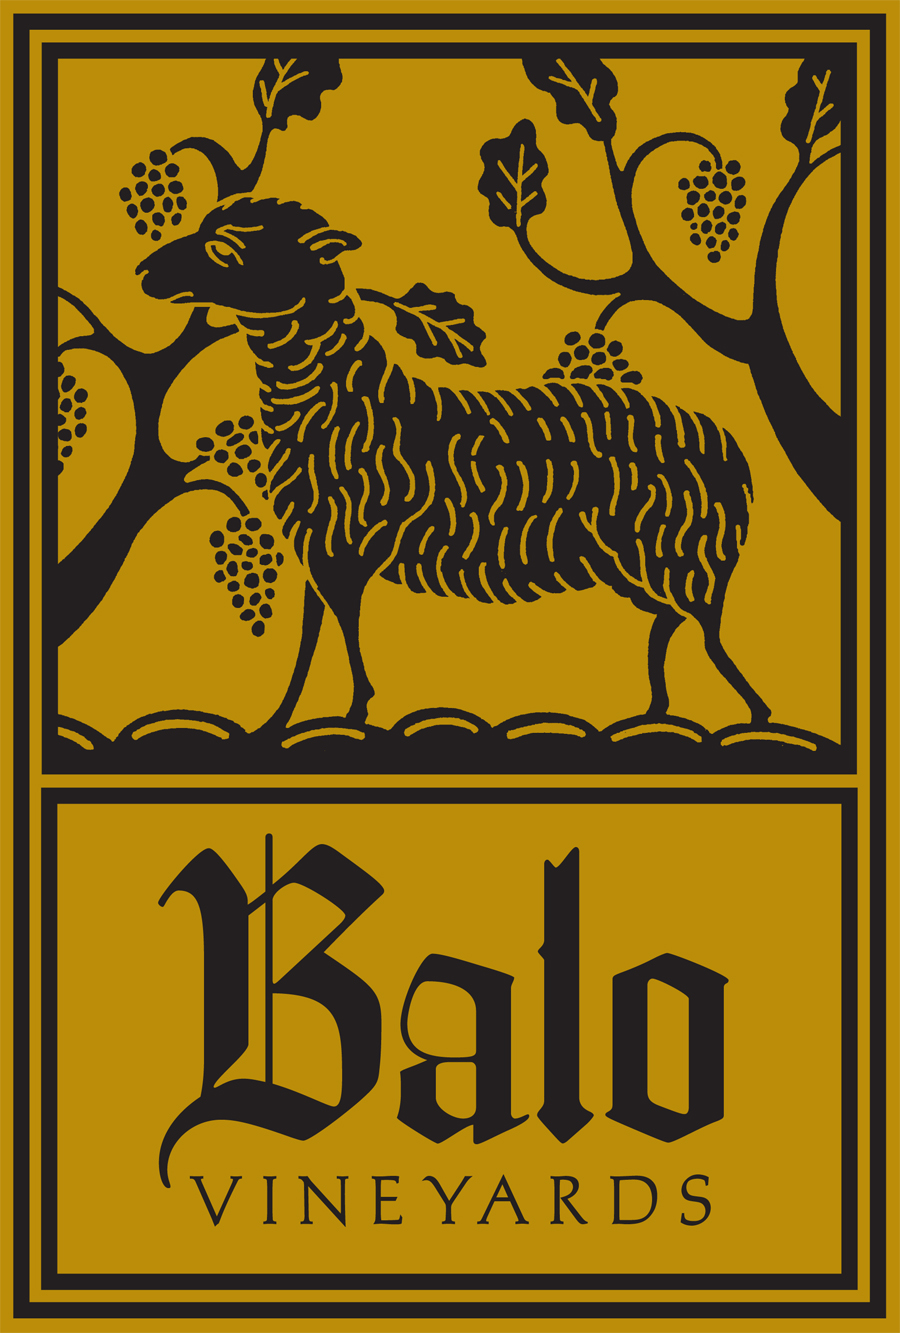 Balo Vineyards Wine Labels 2009